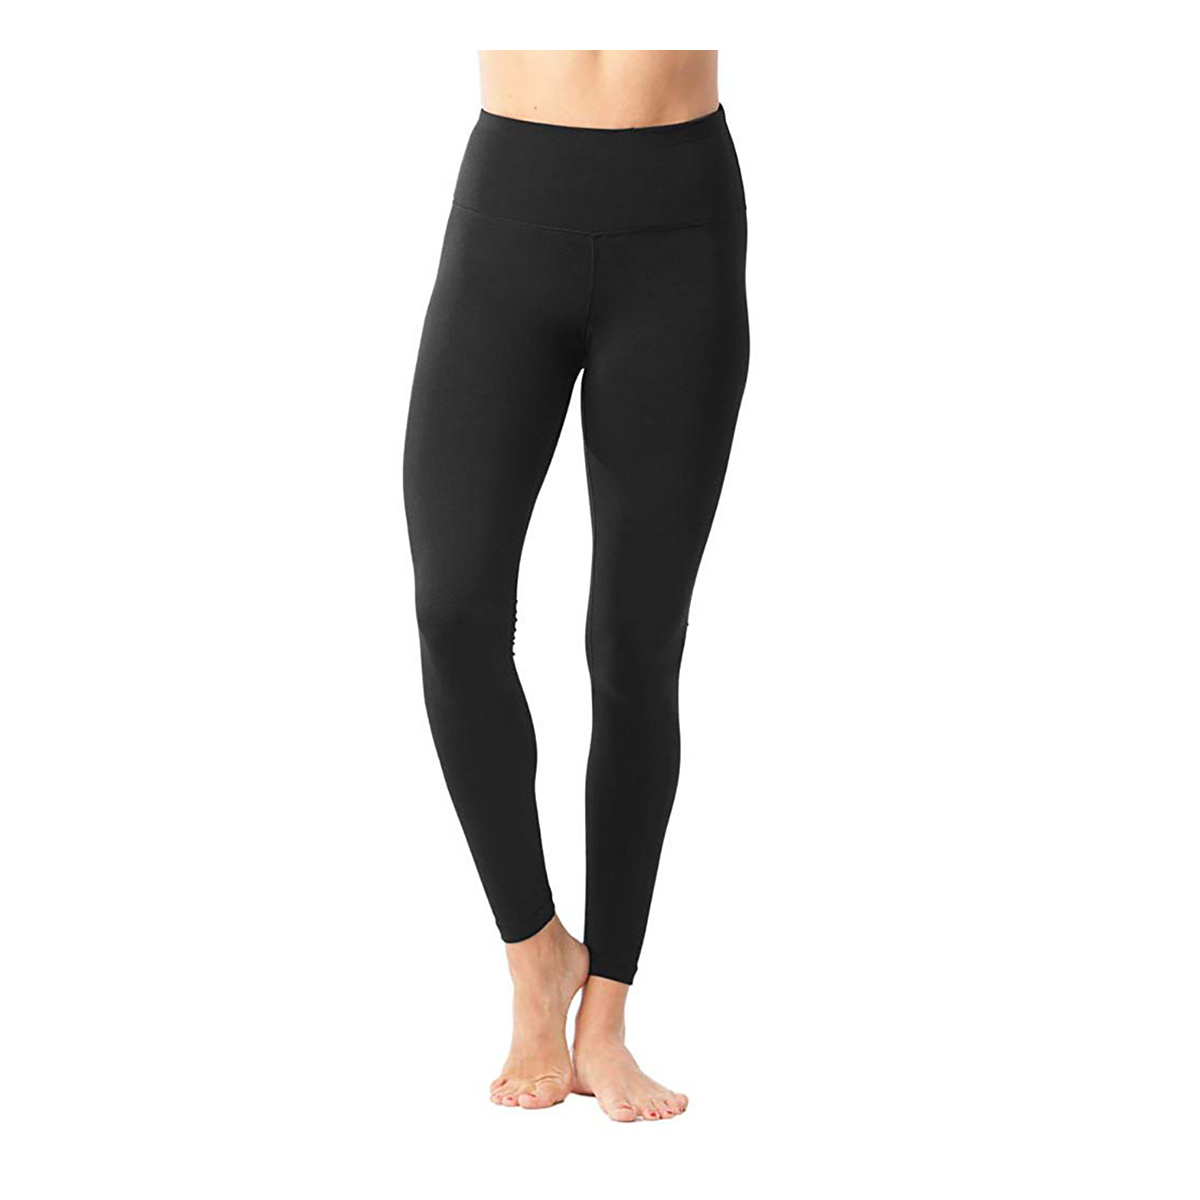 Best High-Waisted Option: 90 Degree by Reflex Leggings